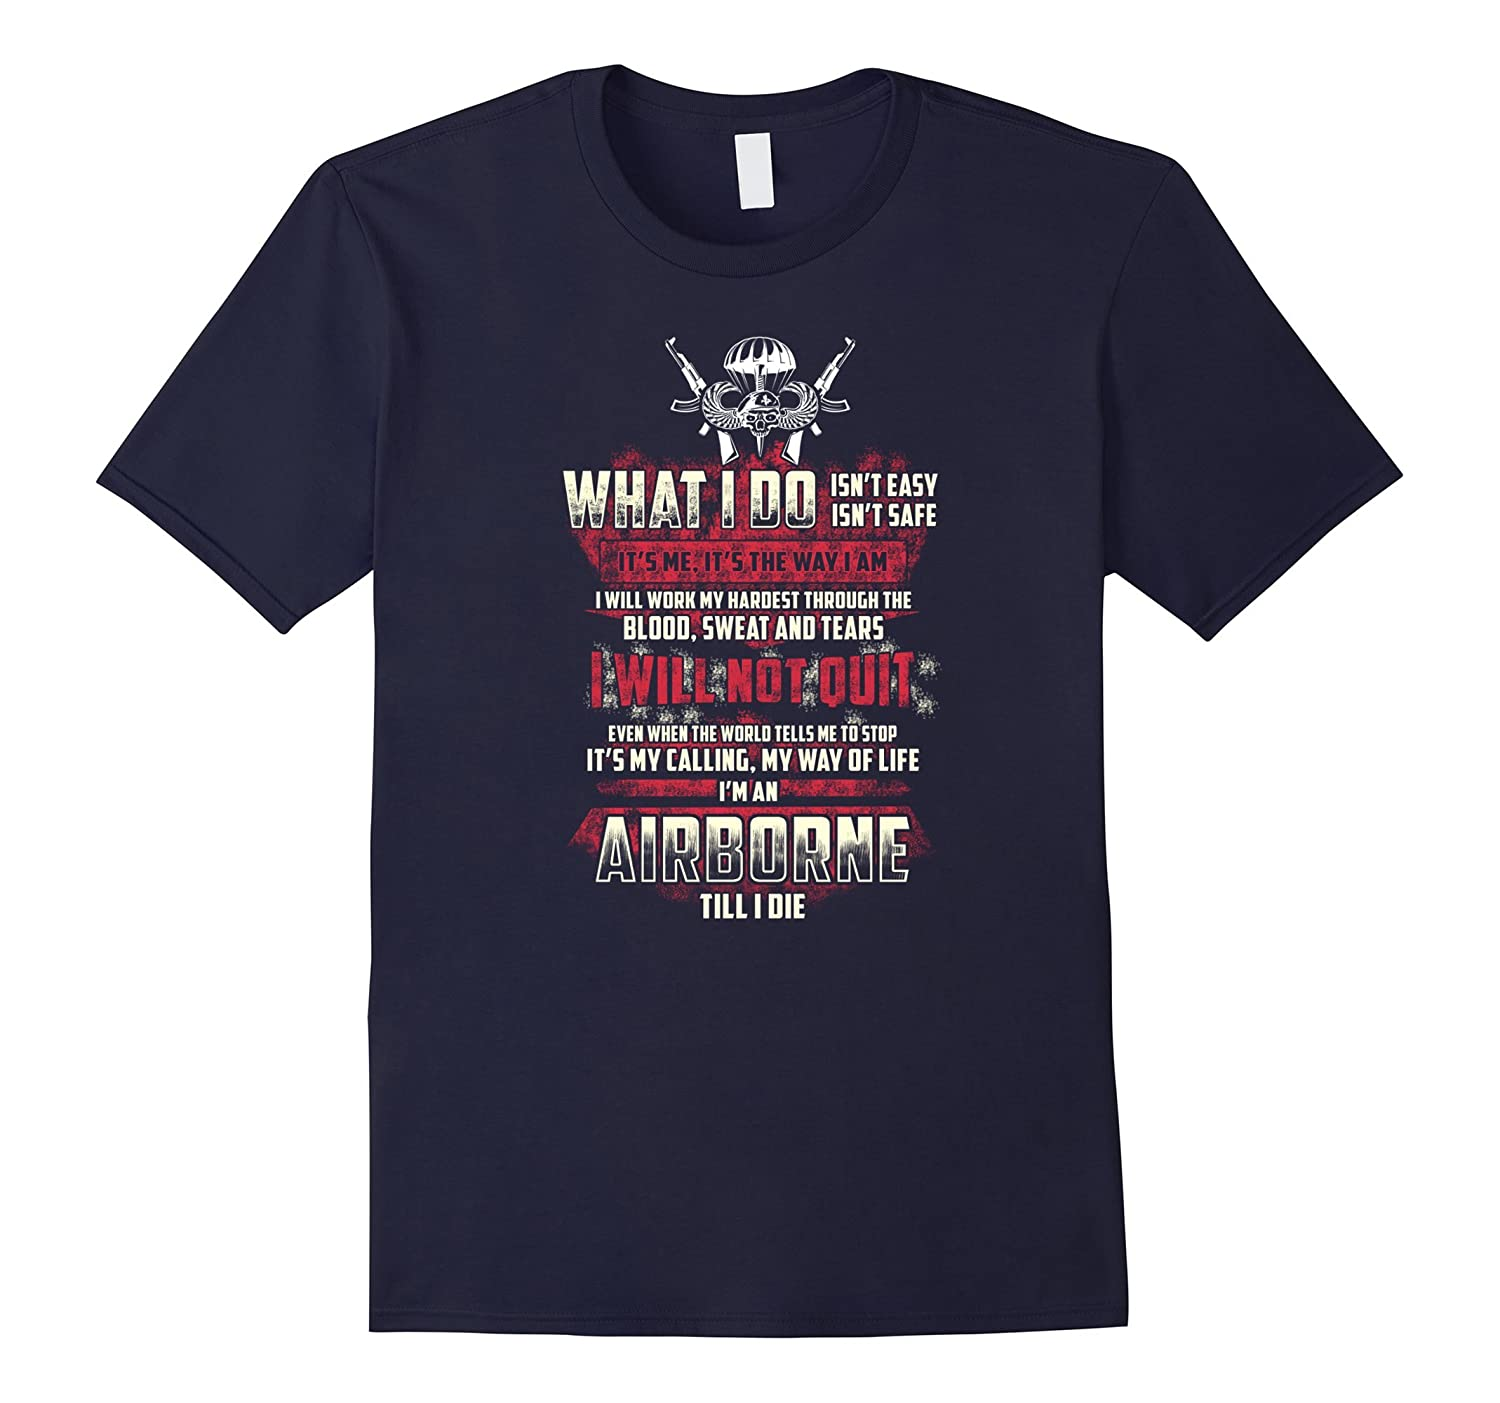 Airborne T-shirt , What I do isn't easy What I do isn't safe-BN